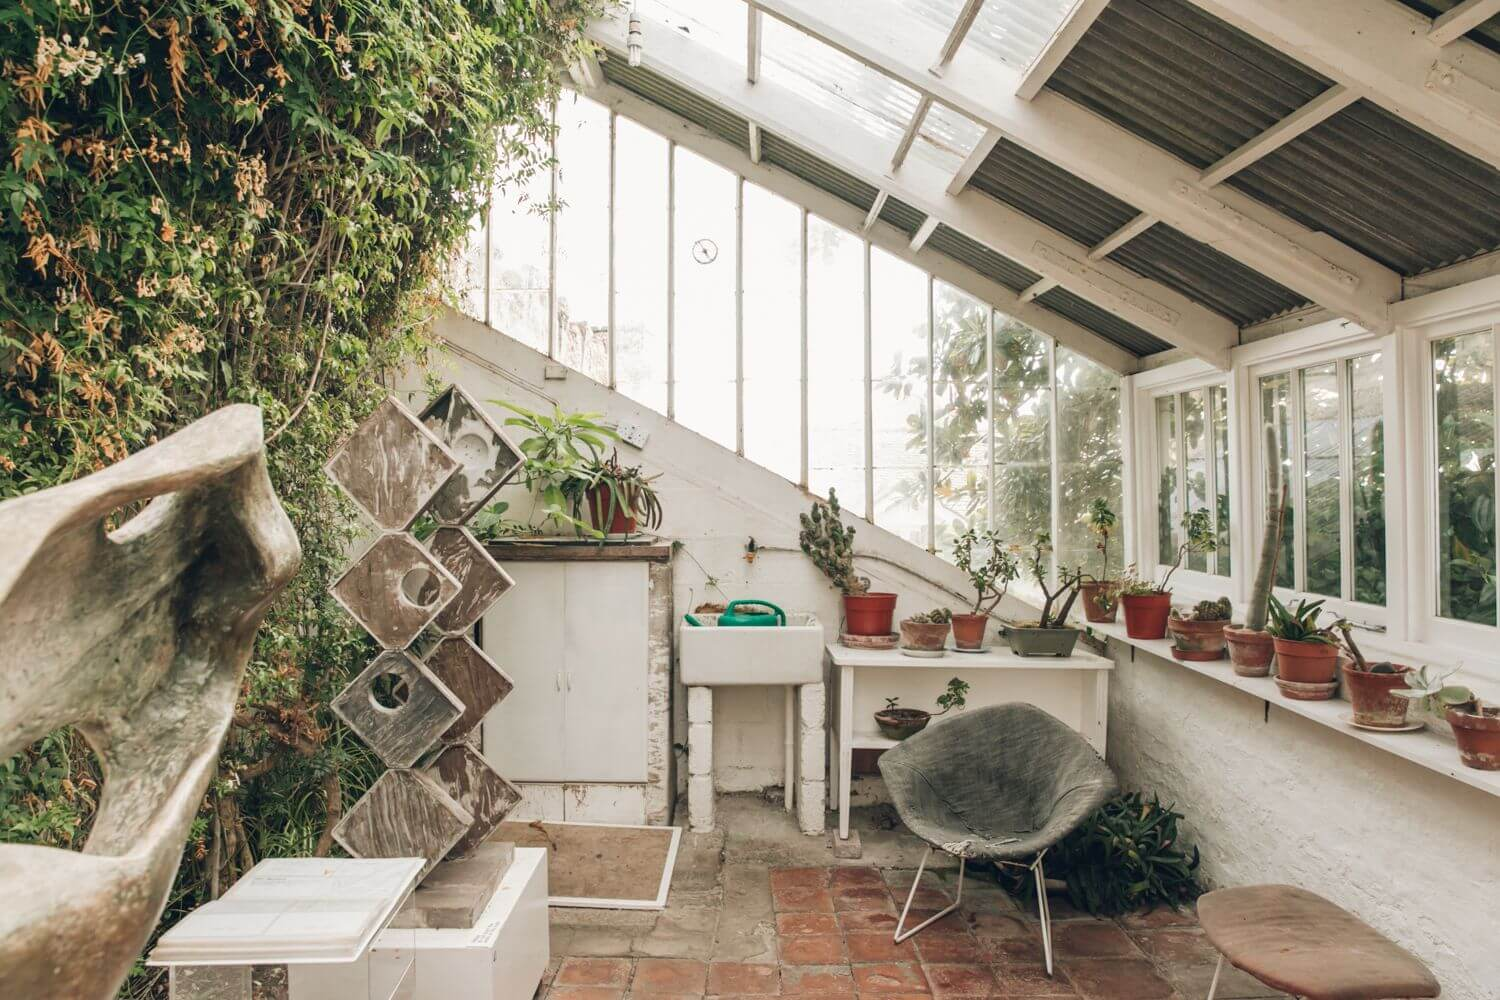 BARBARA HEPWORTH'S SEASIDE HOME